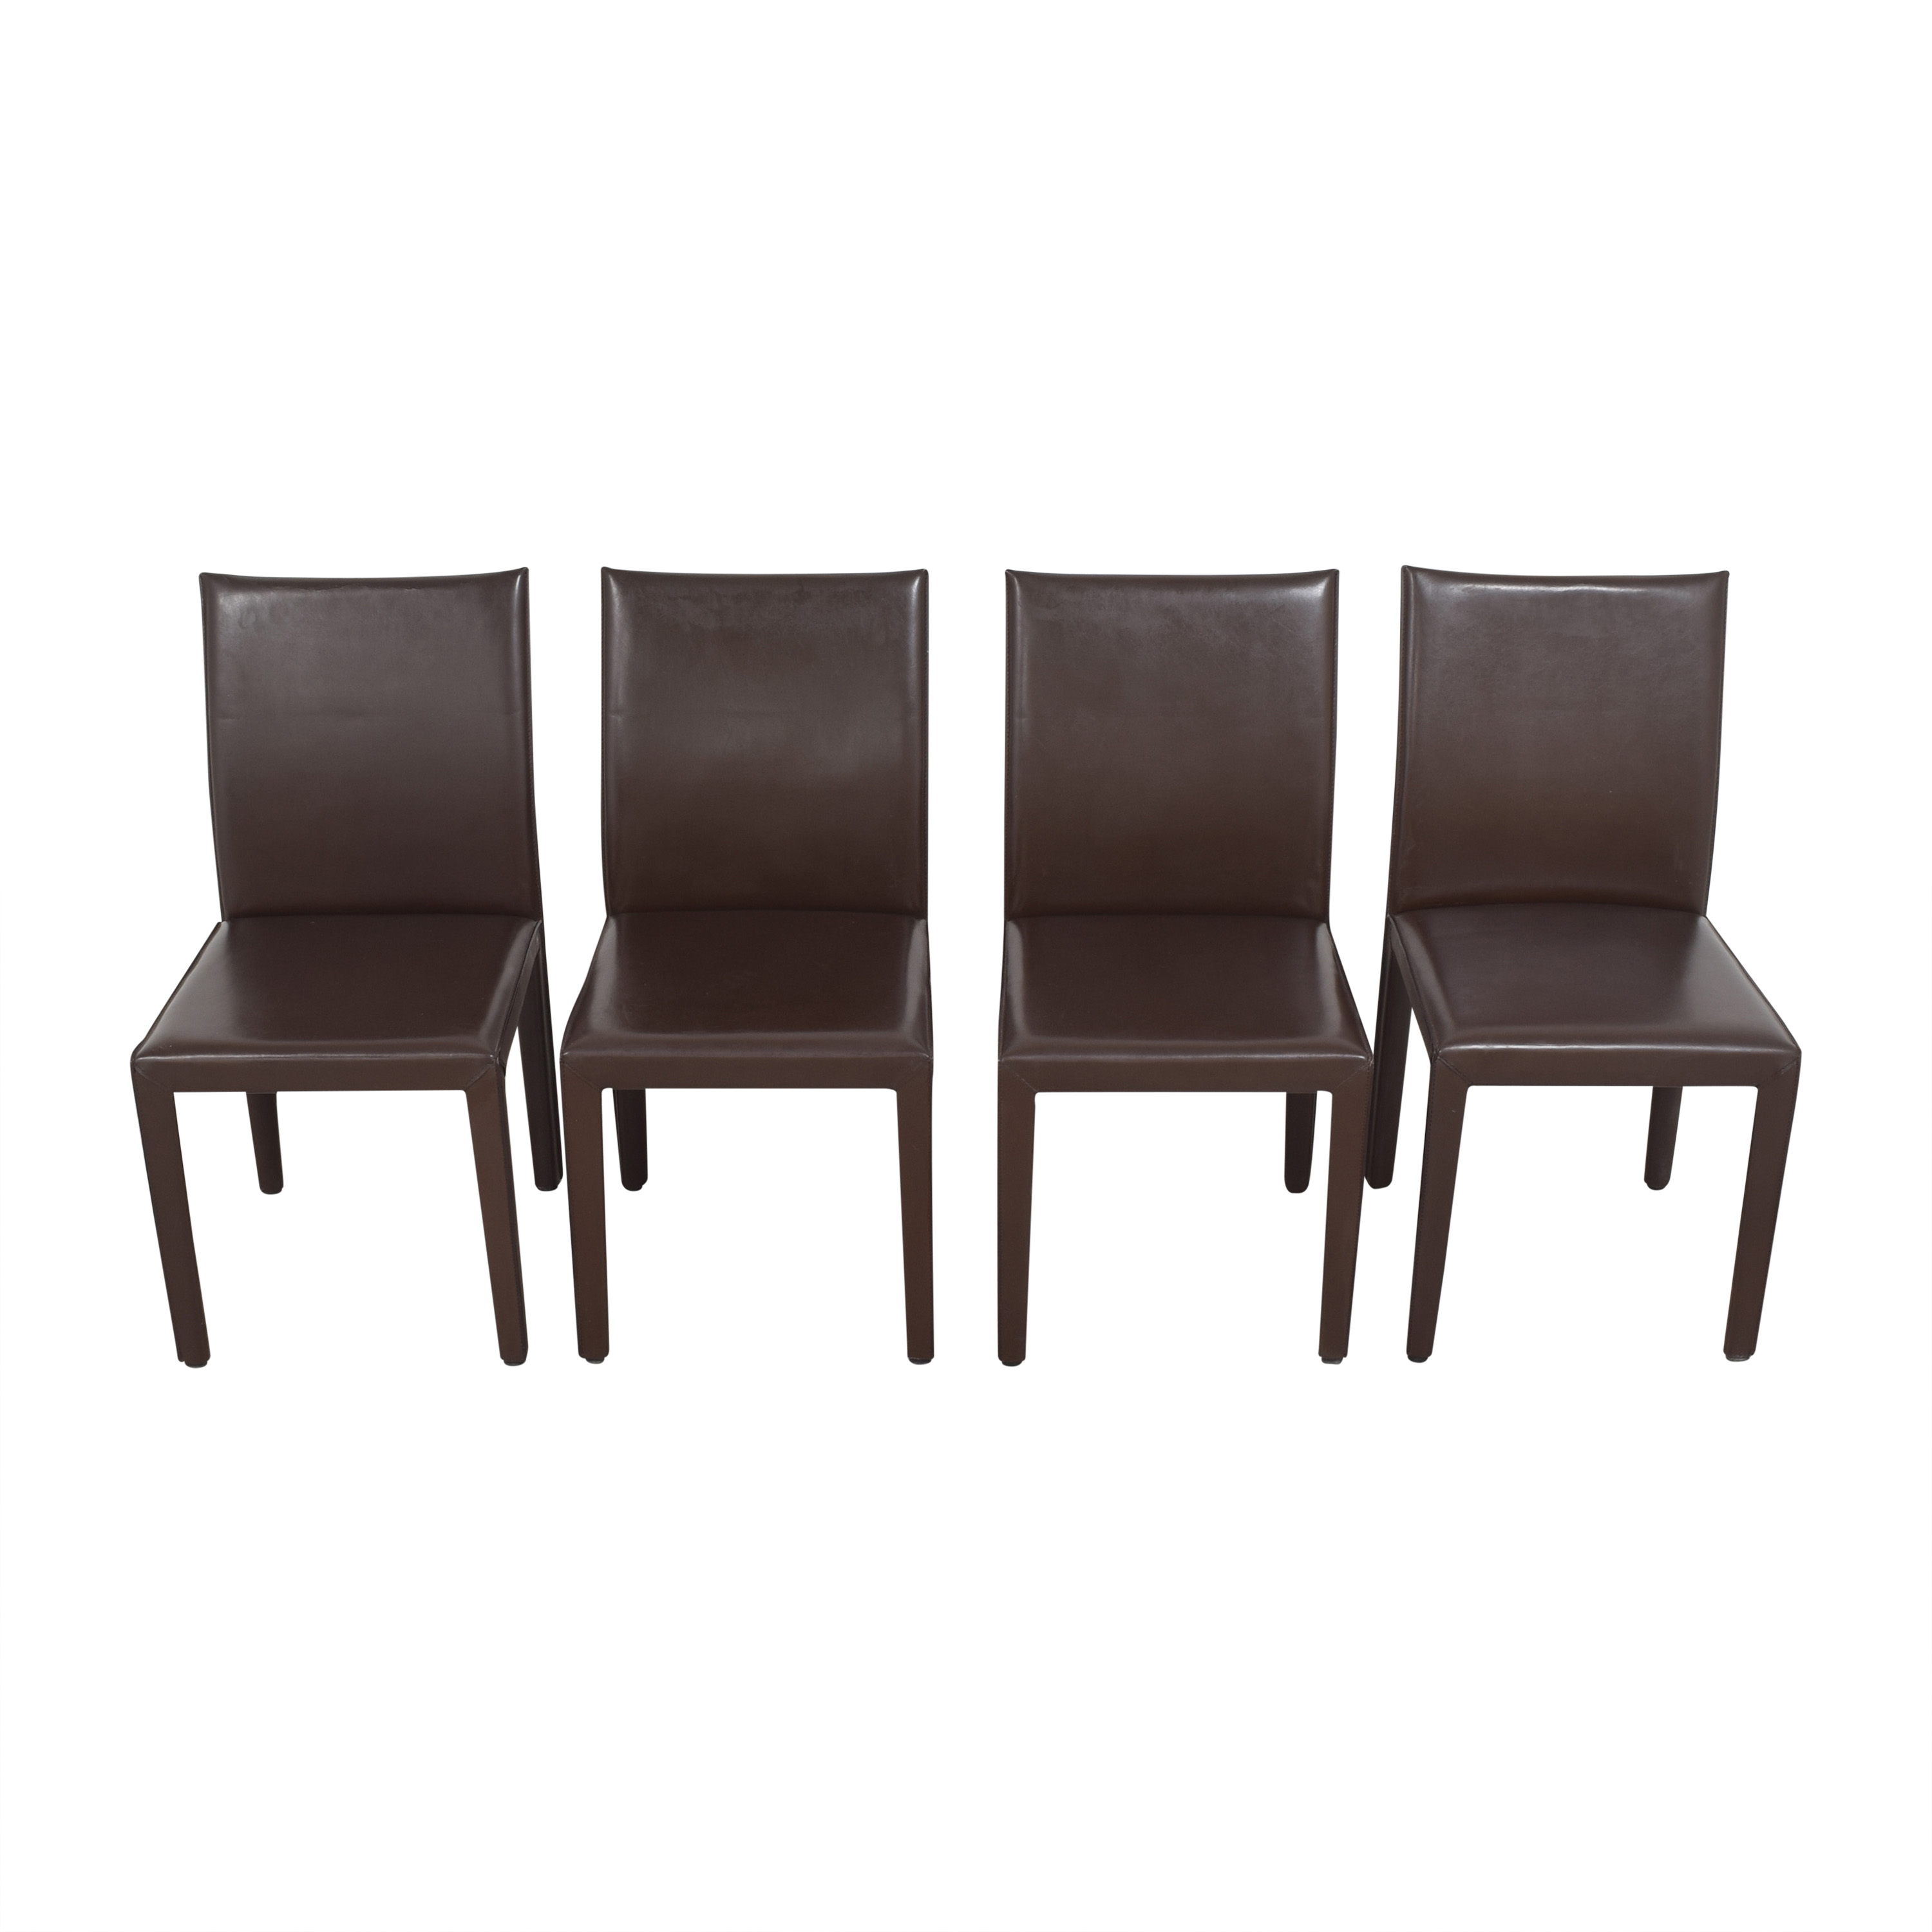 shop Crate & Barrel Crate & Barrel Folio Dining Chairs by Maria Yee online